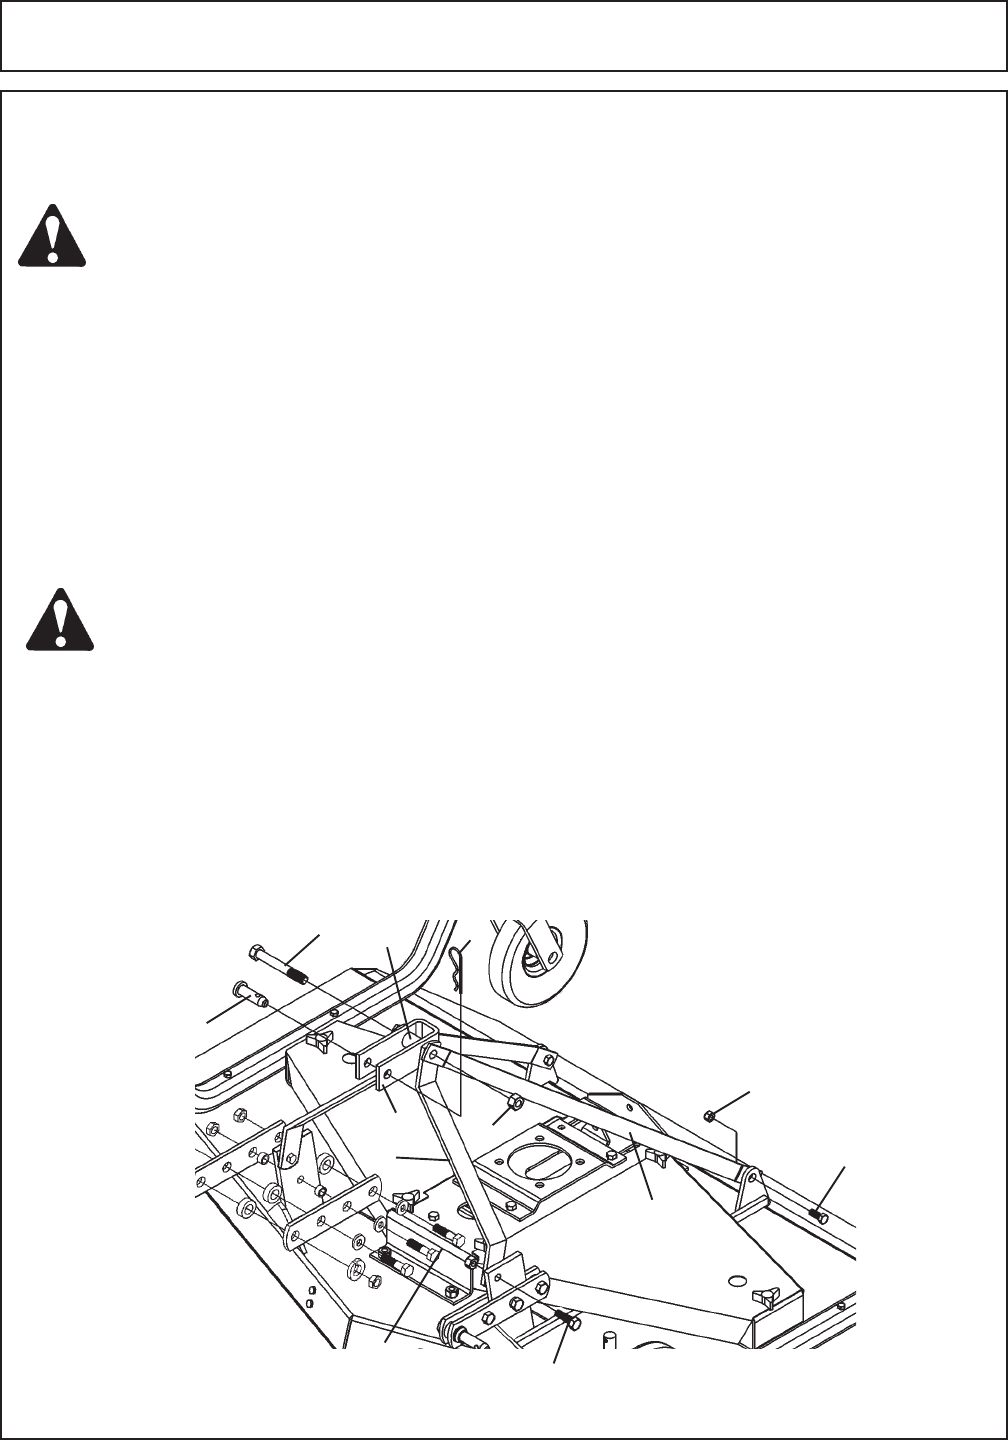 Page 72 of Servis-Rhino Lawn Mower FM60/72 User Guide